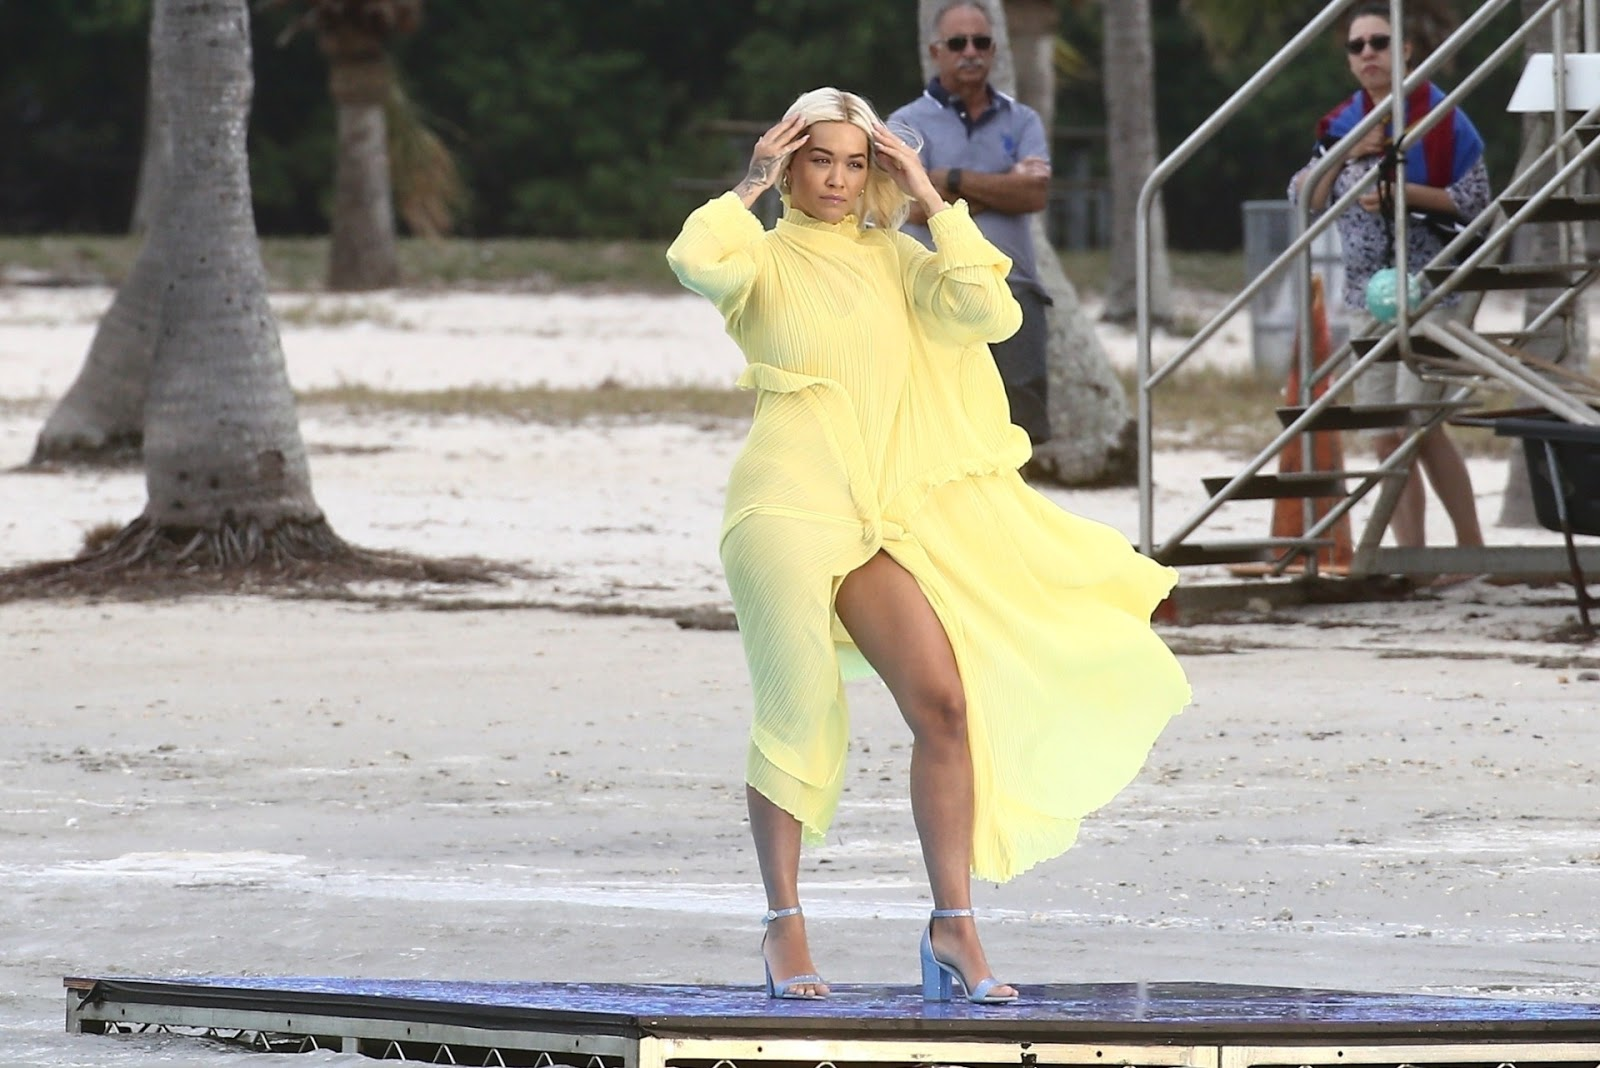 Rita ora having wardrobe malfunction exposing her panties on beach in Miami.